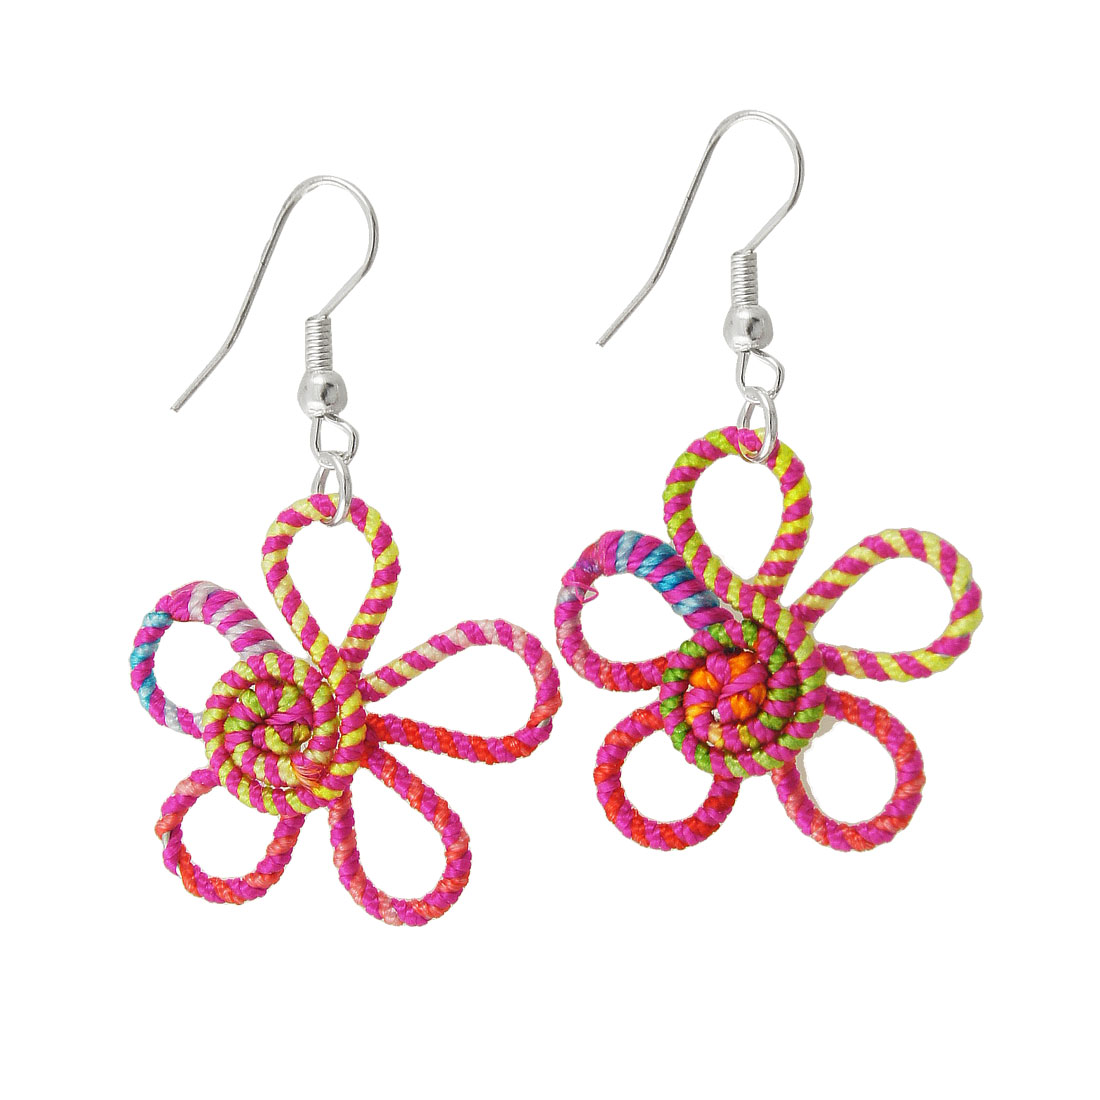 Pair Colorful Flower Shaped Pendant Earrings Gift for Ladies